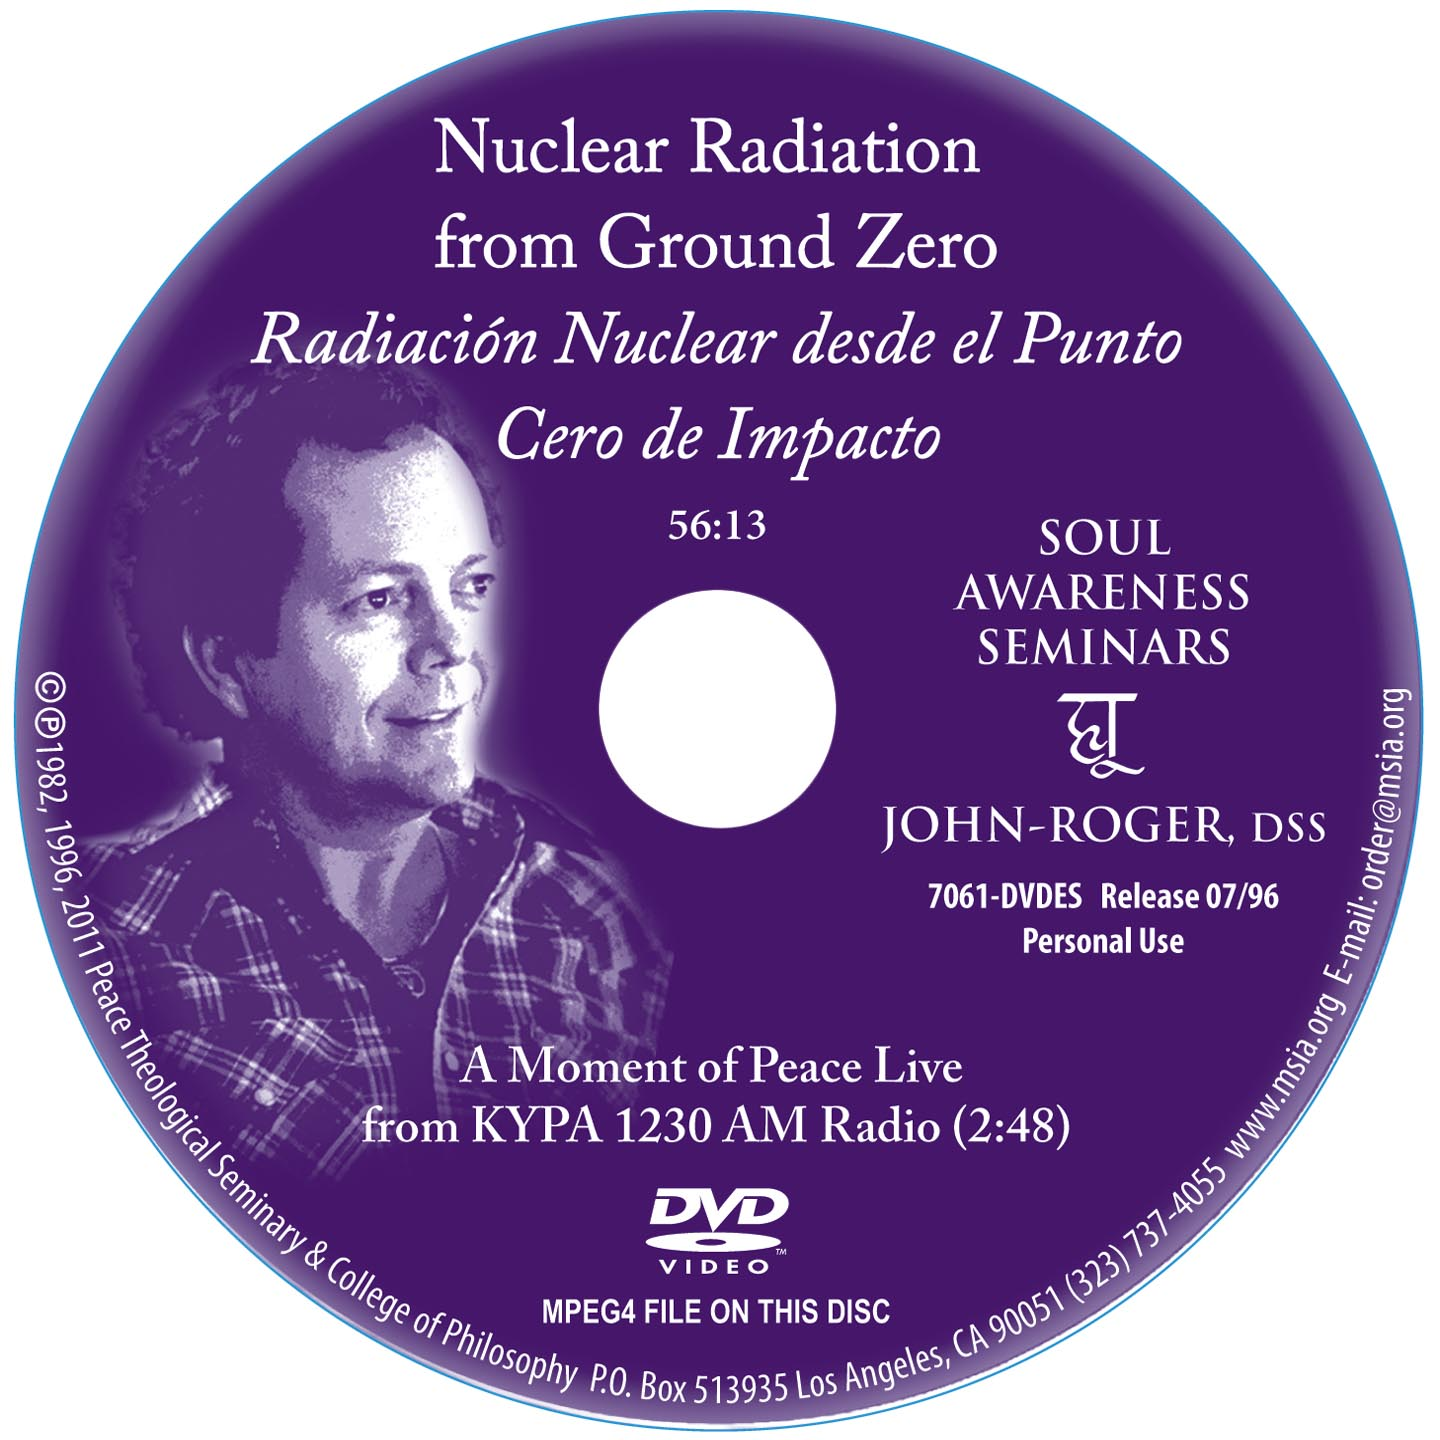 Nuclear Radiation from Ground Zero MP4